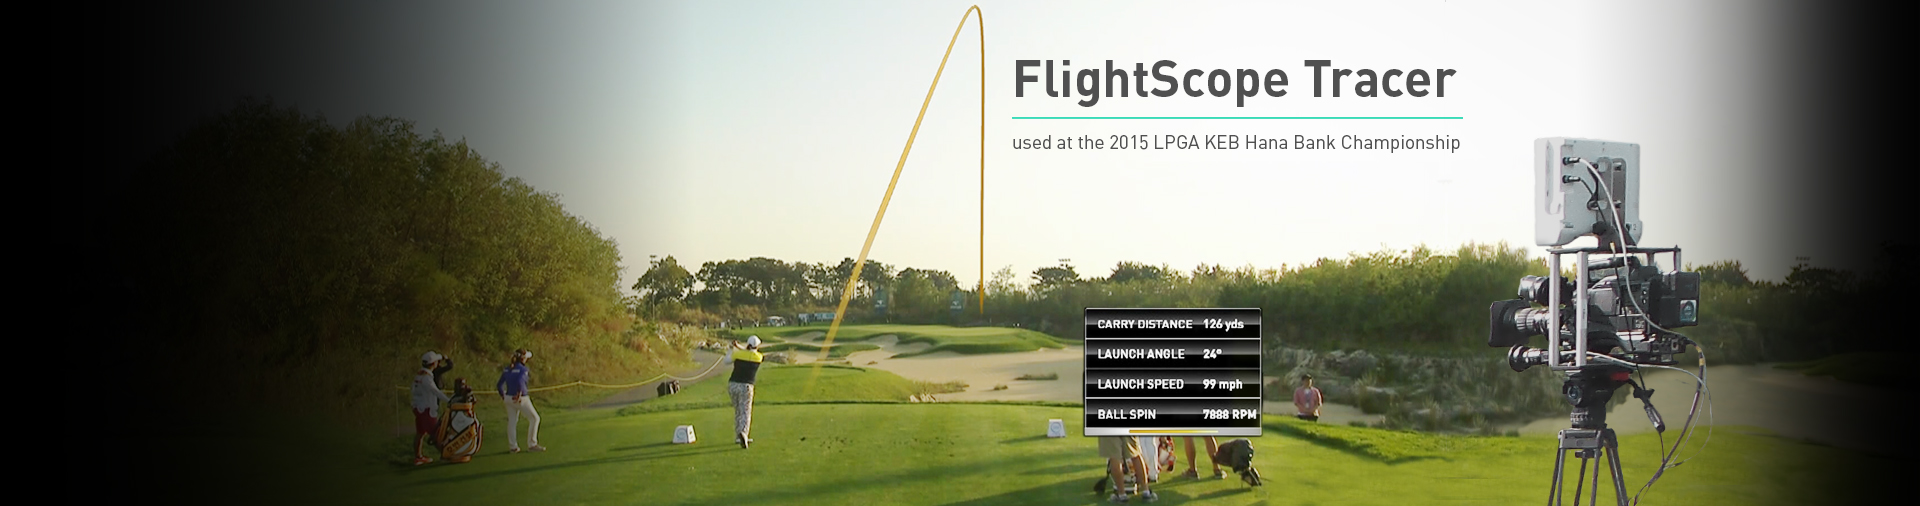 Photo showing the FlightScope Tracer golf club and ball tracking technology in action.